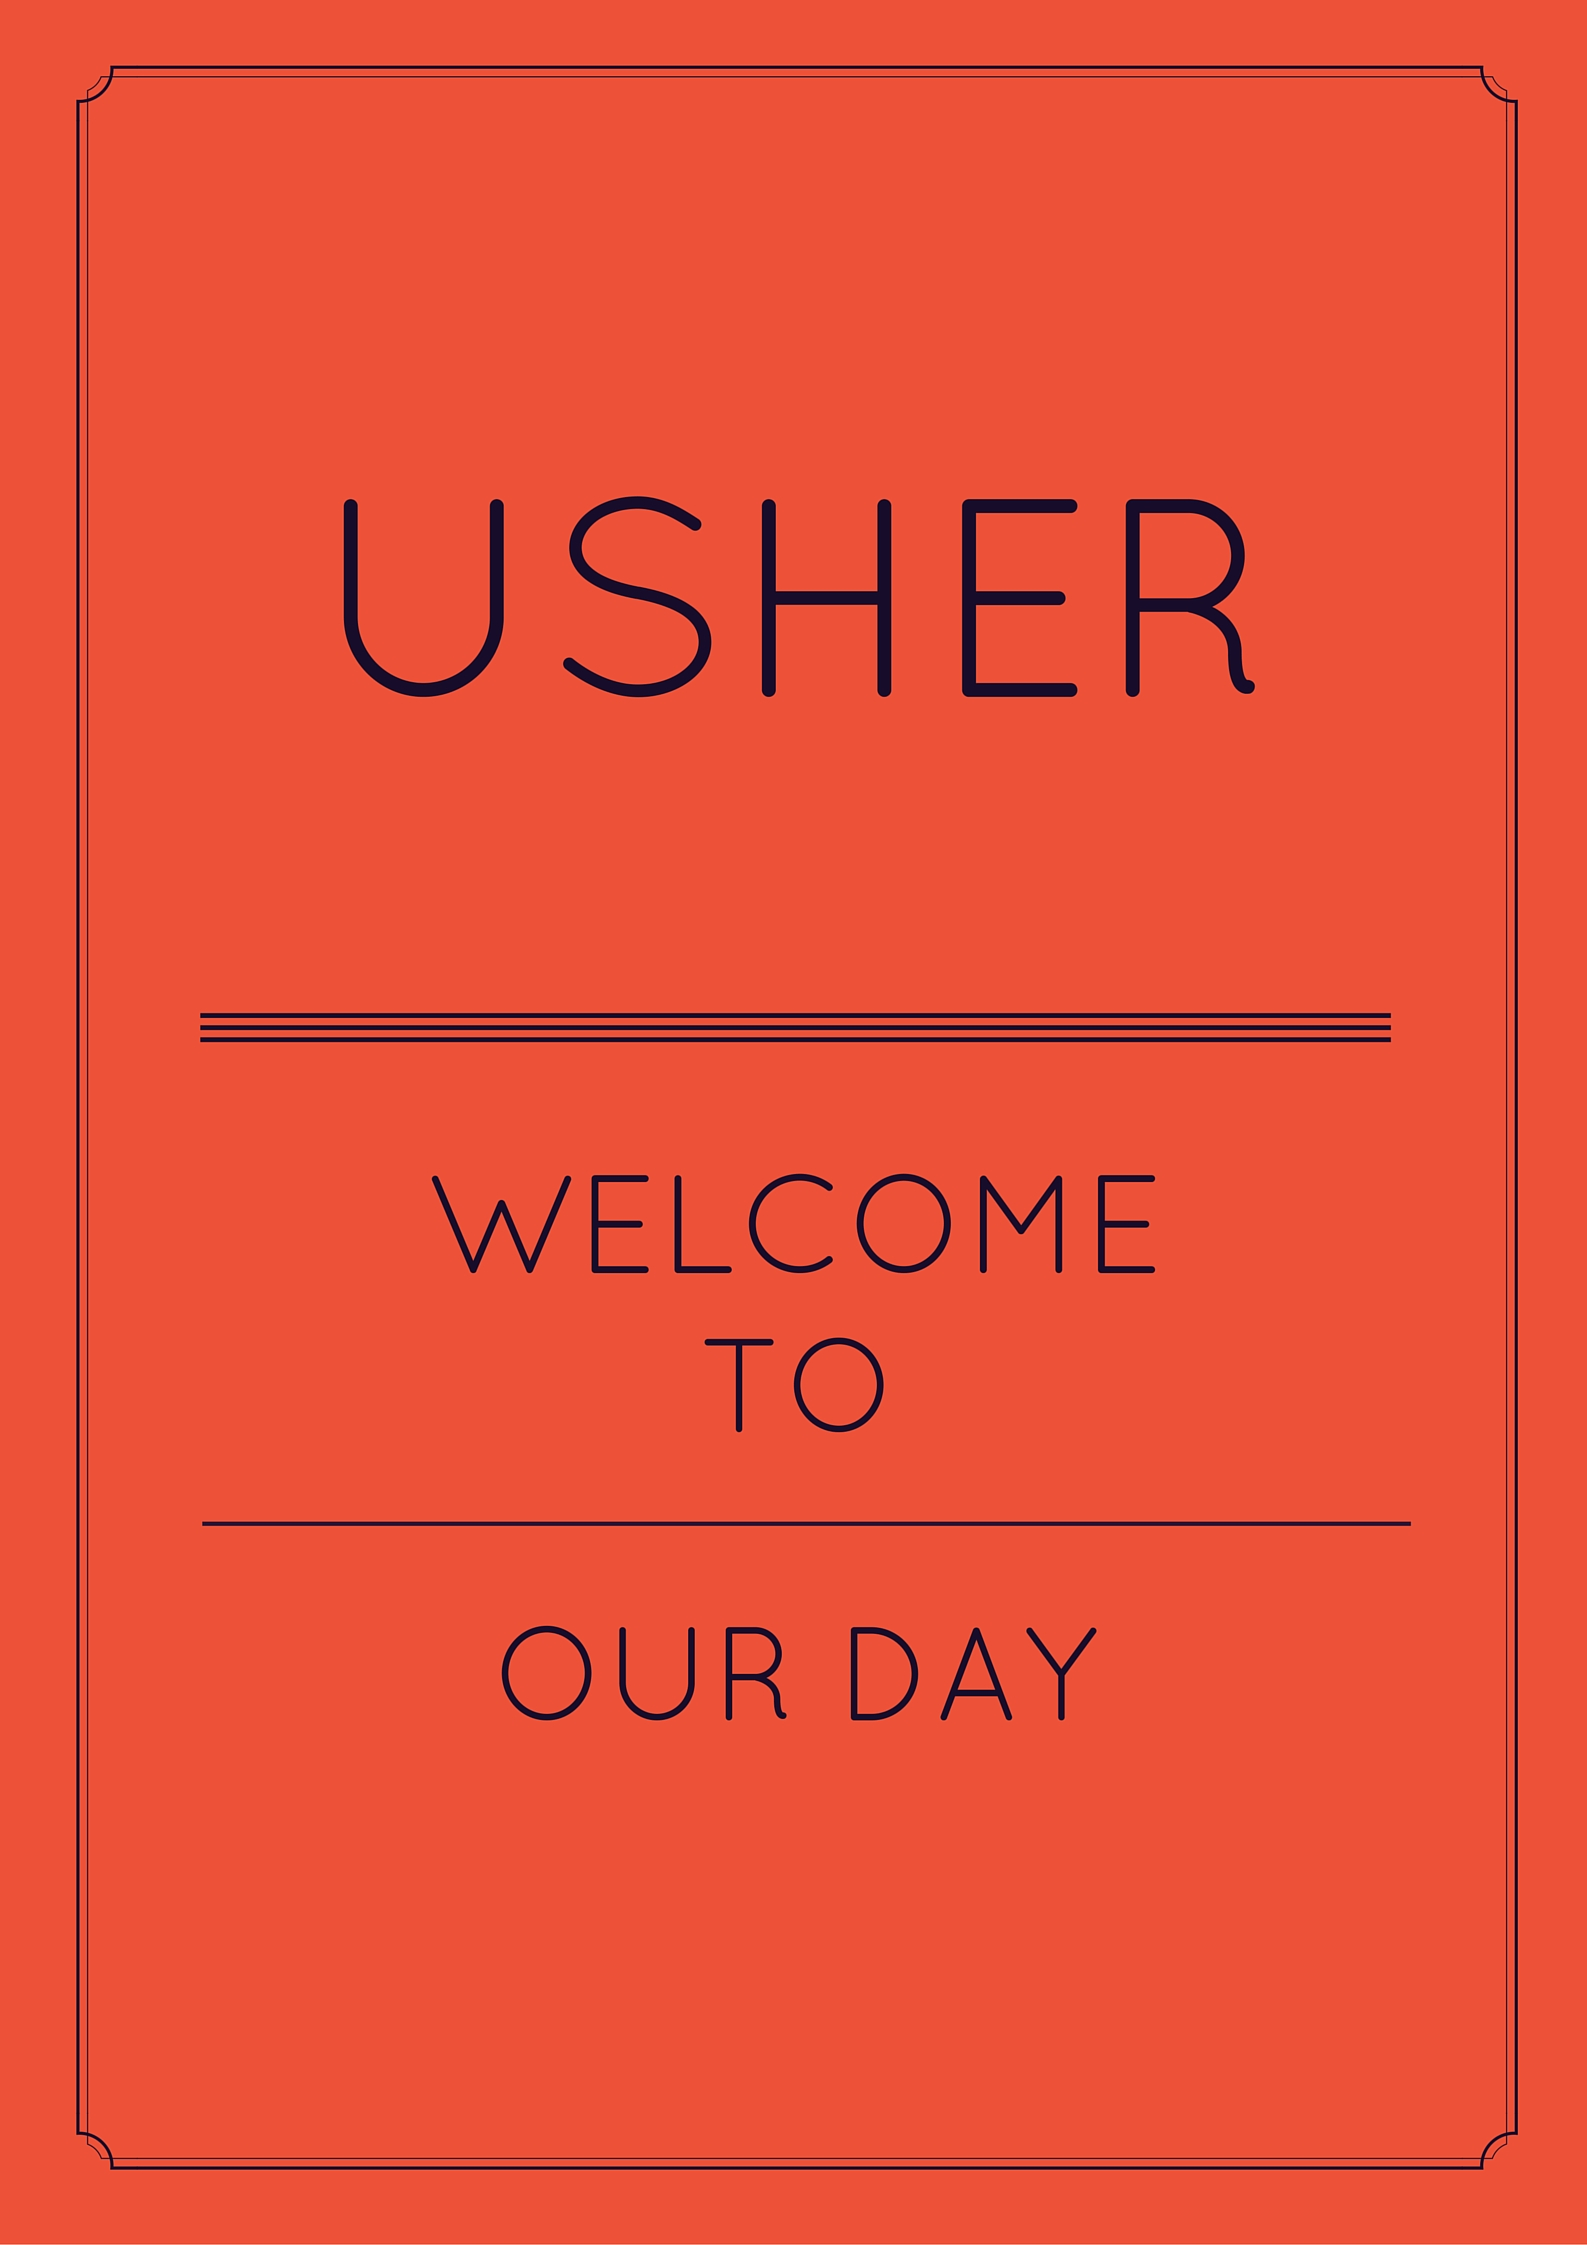 occasion for usher anniversary